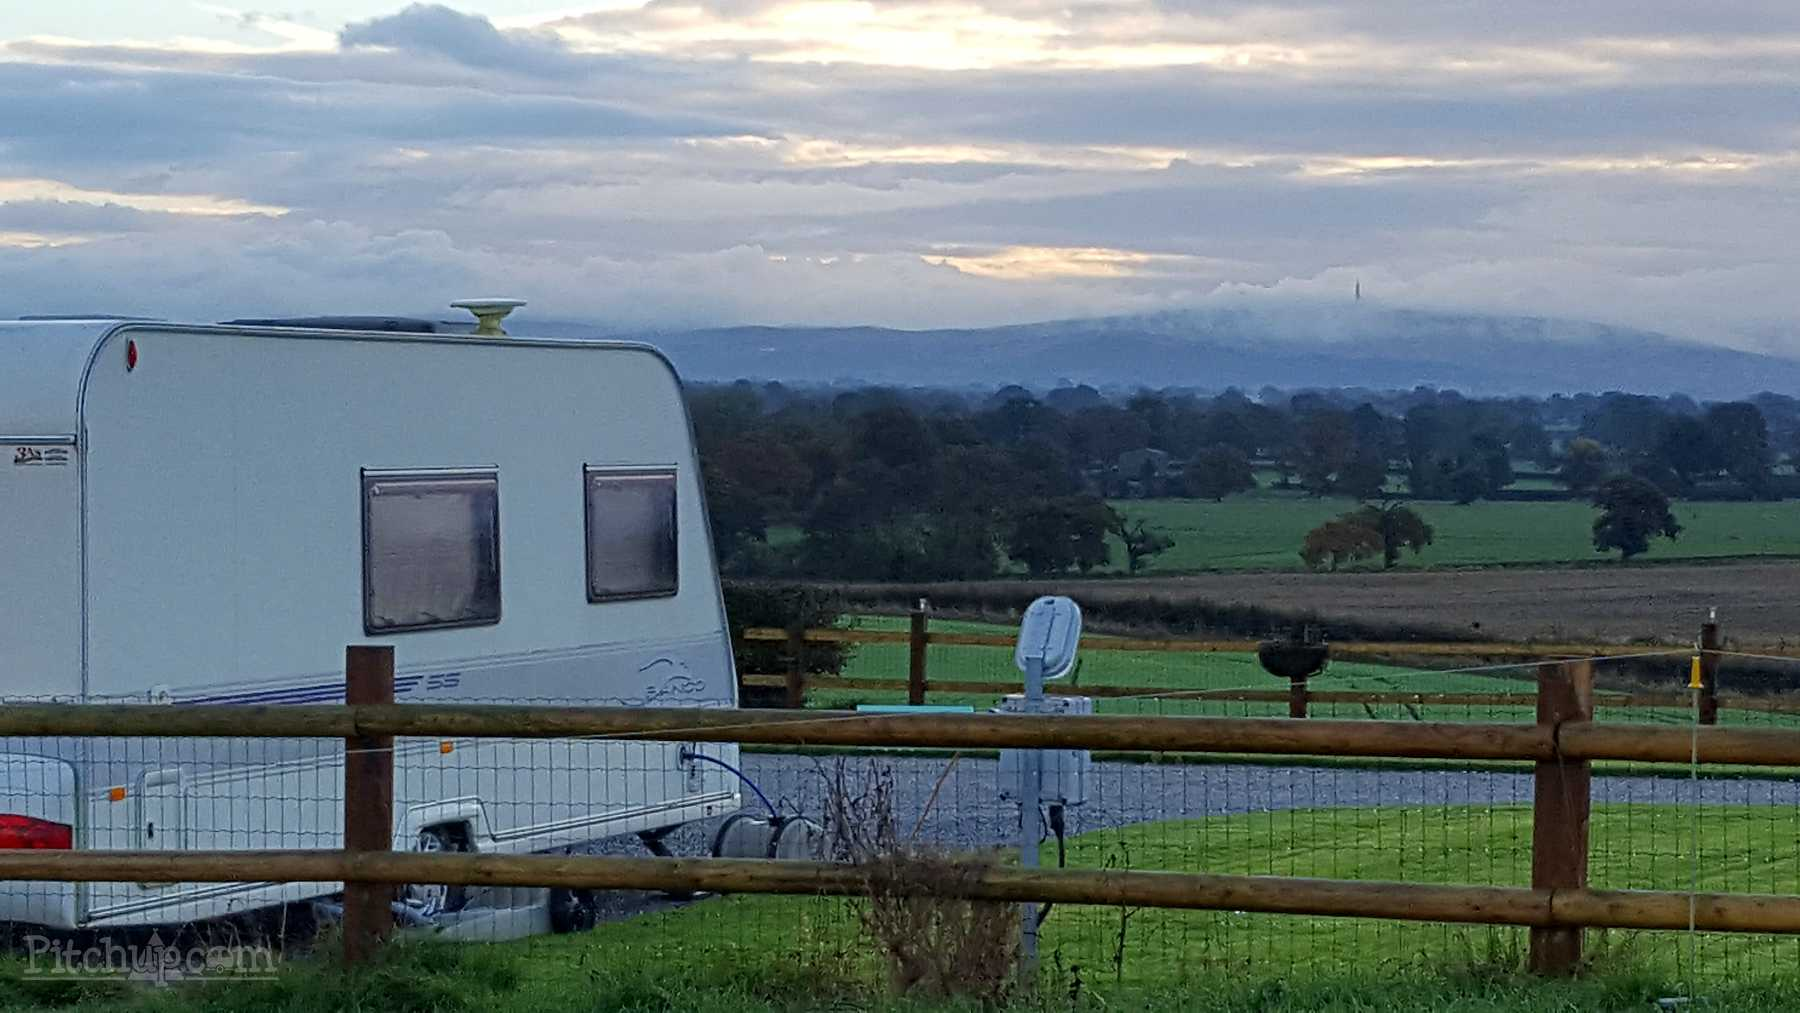 Camping and Caravanning in Lower Withington